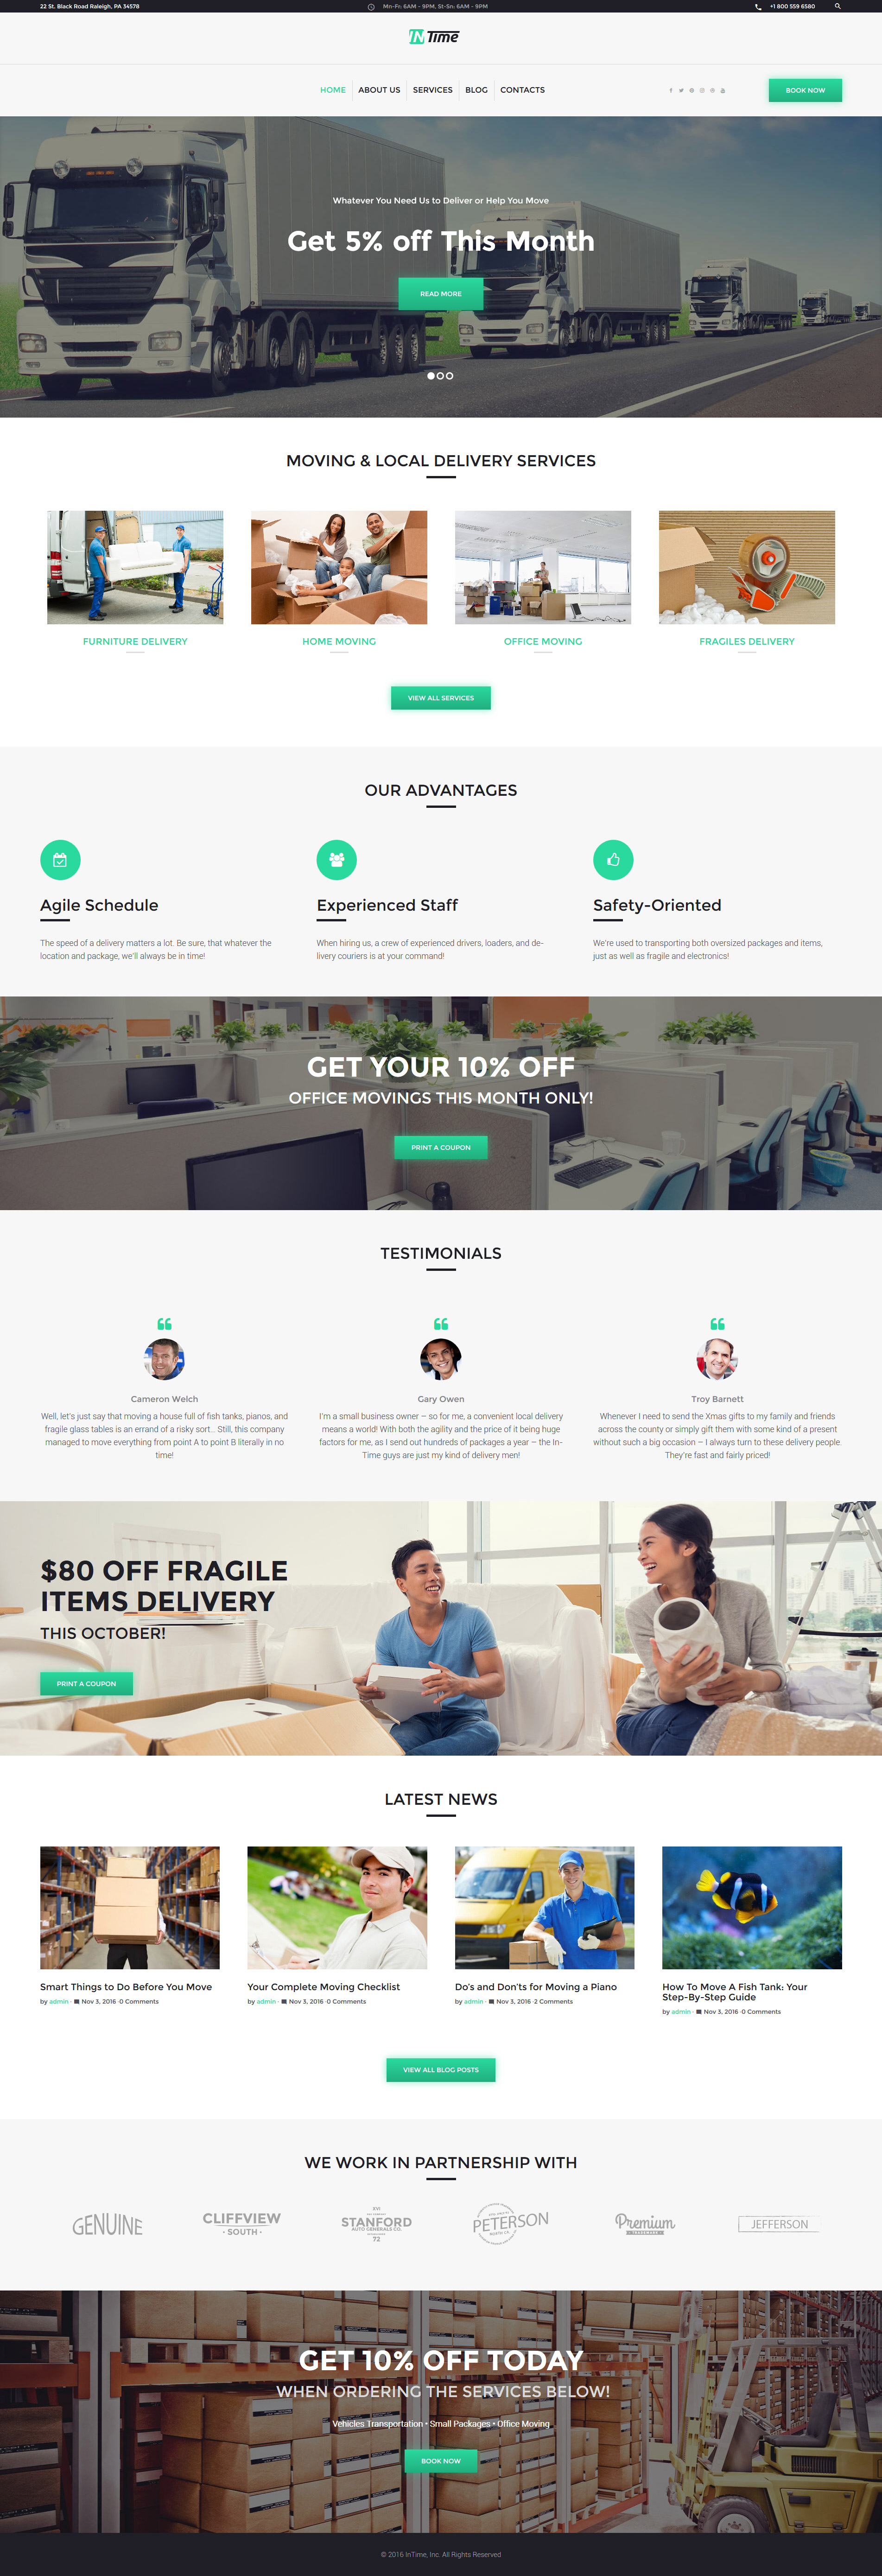 InTime - Delivery Services WordPress Theme WordPress Theme